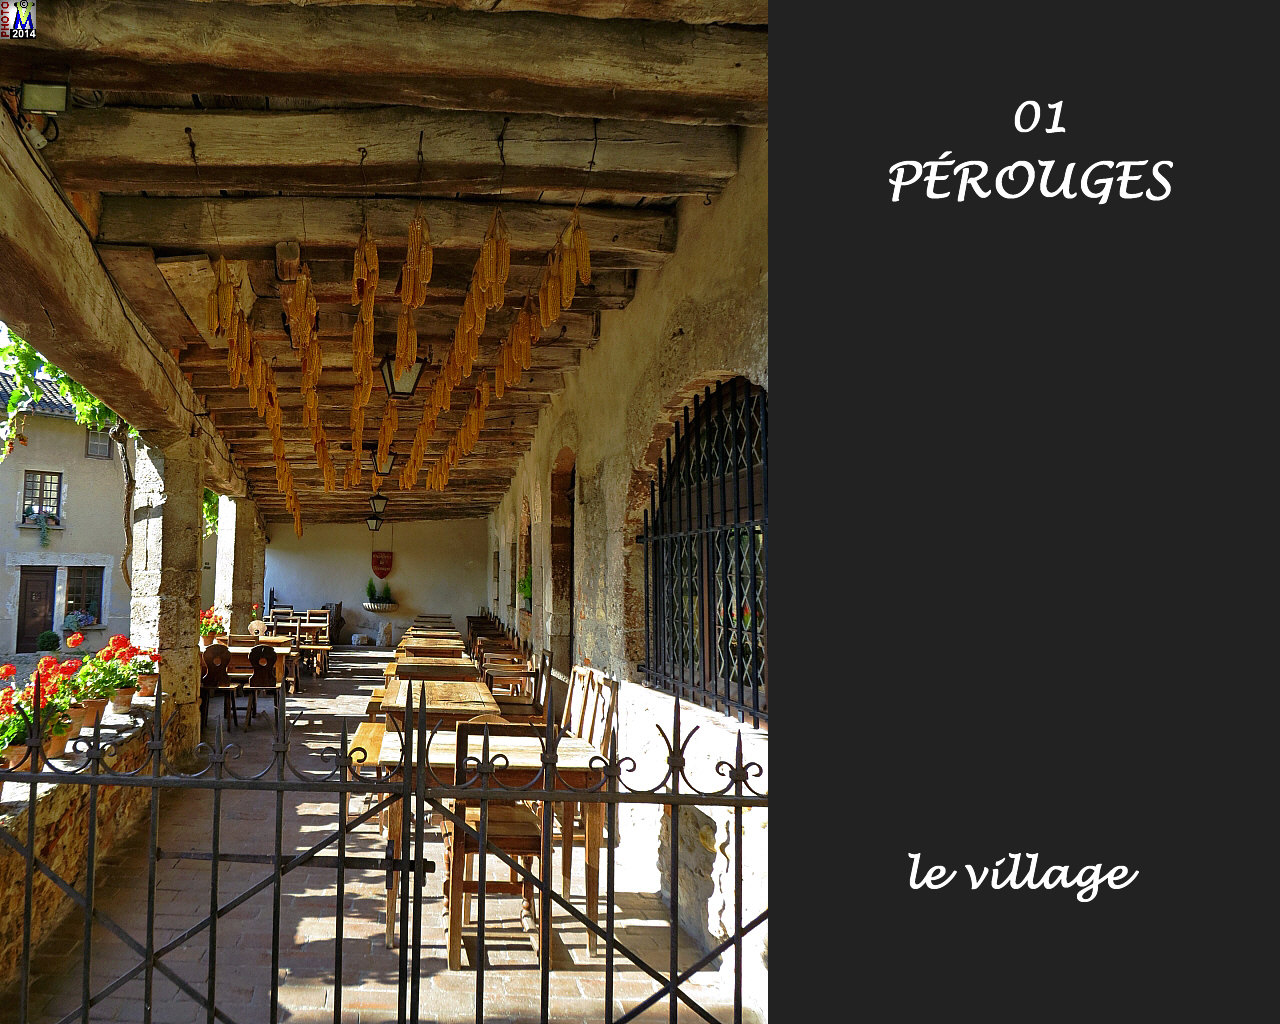 01PEROUGES_village_116.jpg